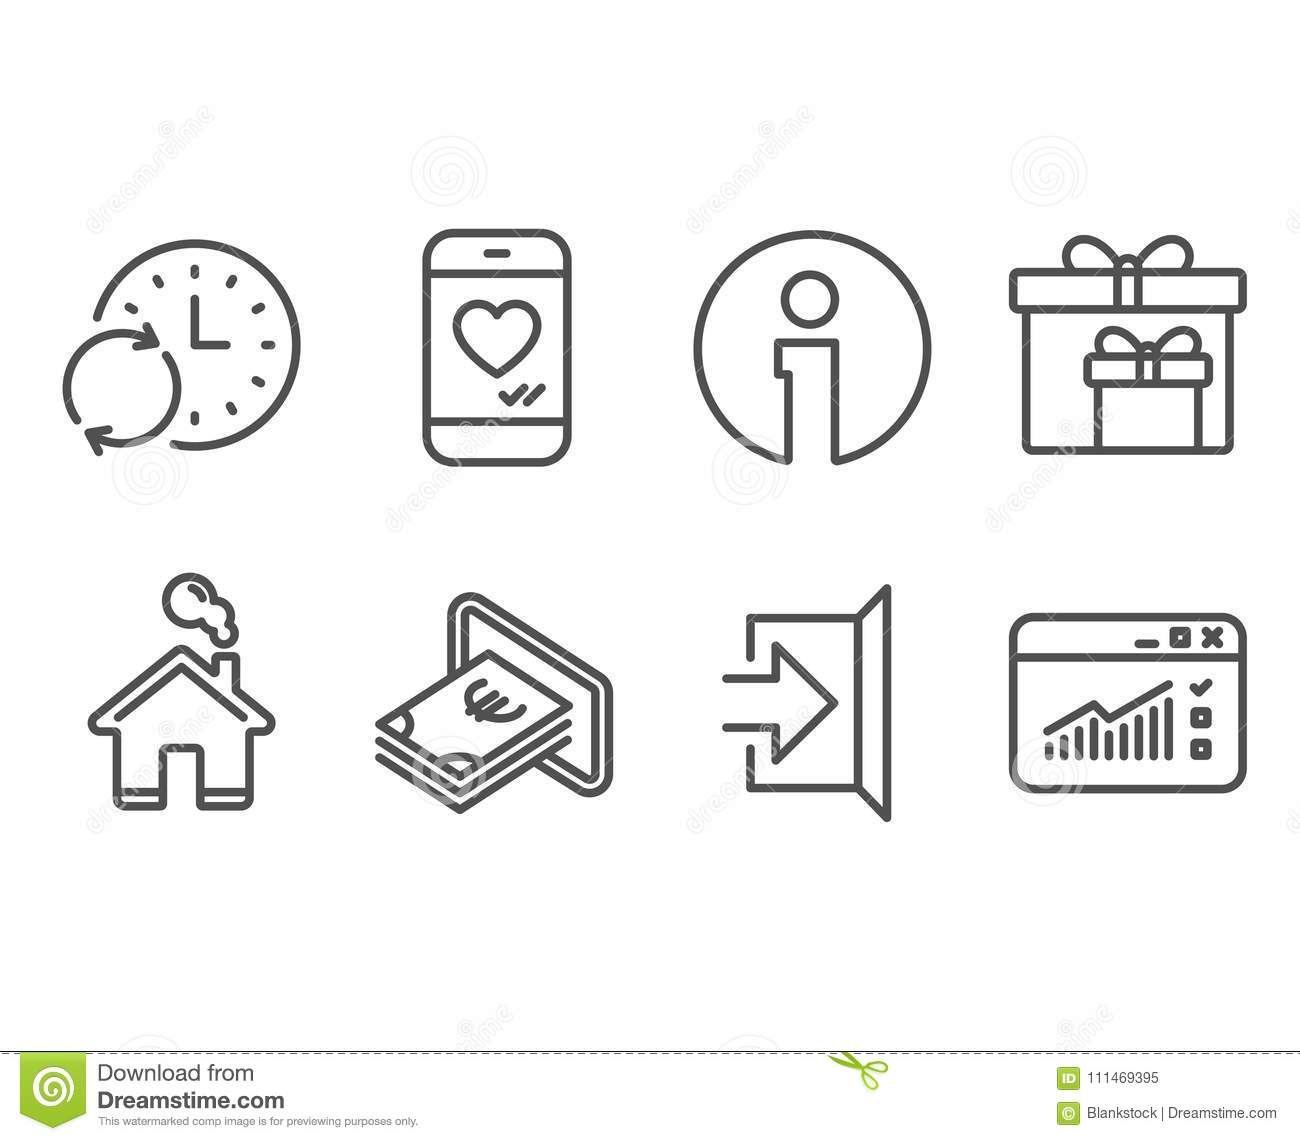 Cash, Update time and Delivery boxes icons. Exit, Love chat and Web traffic signs.